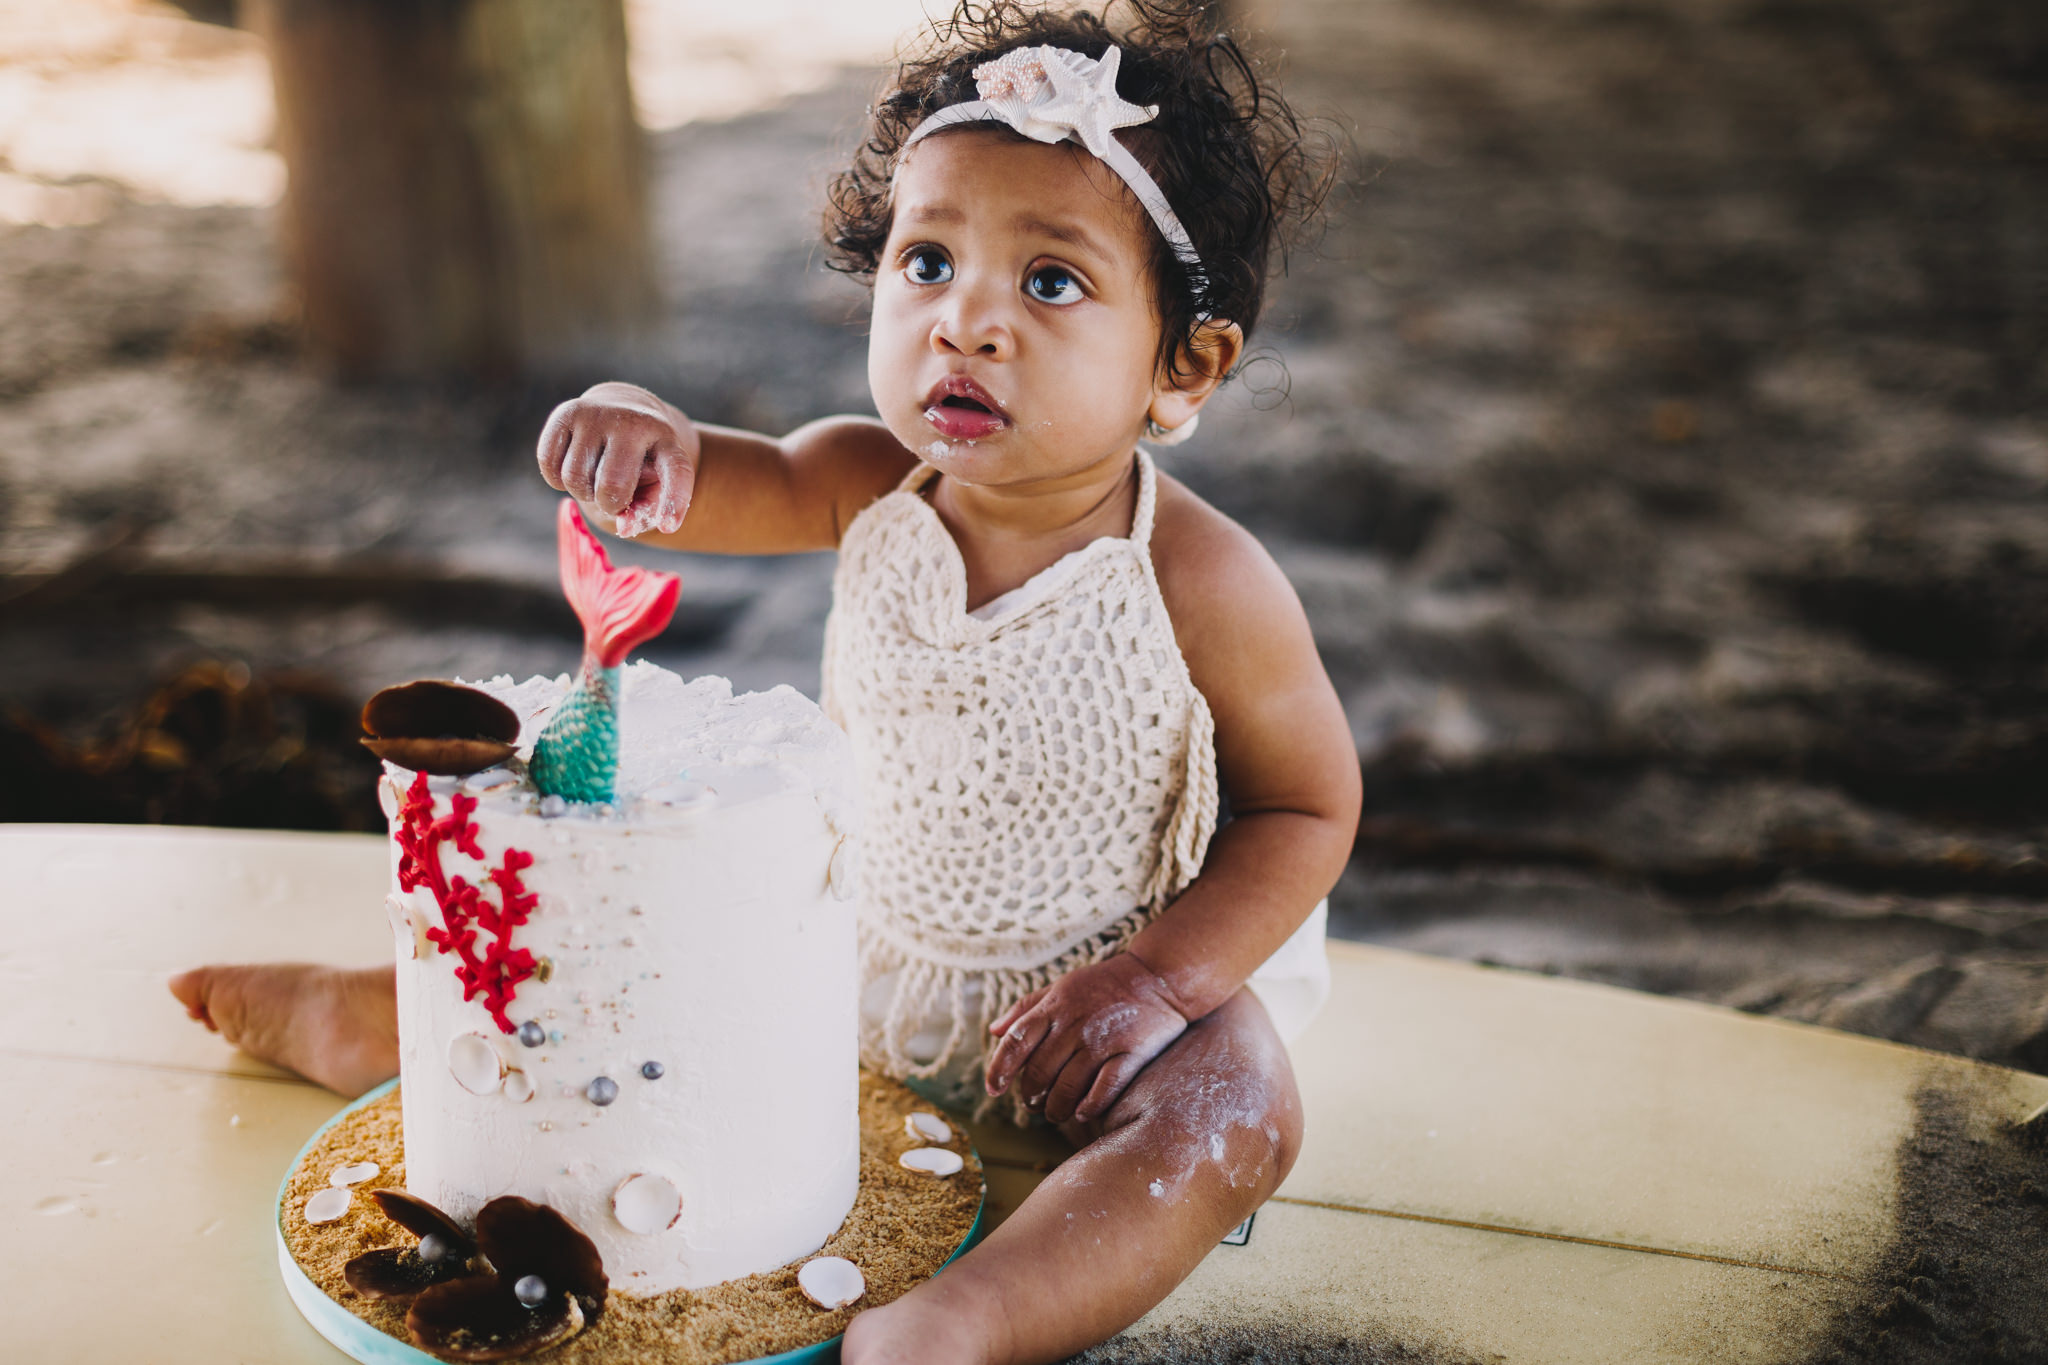 Archer Inspired Photography Cake Smash First Birthday Lifestyle Natural Light Documentary Family Photographer-38.jpg